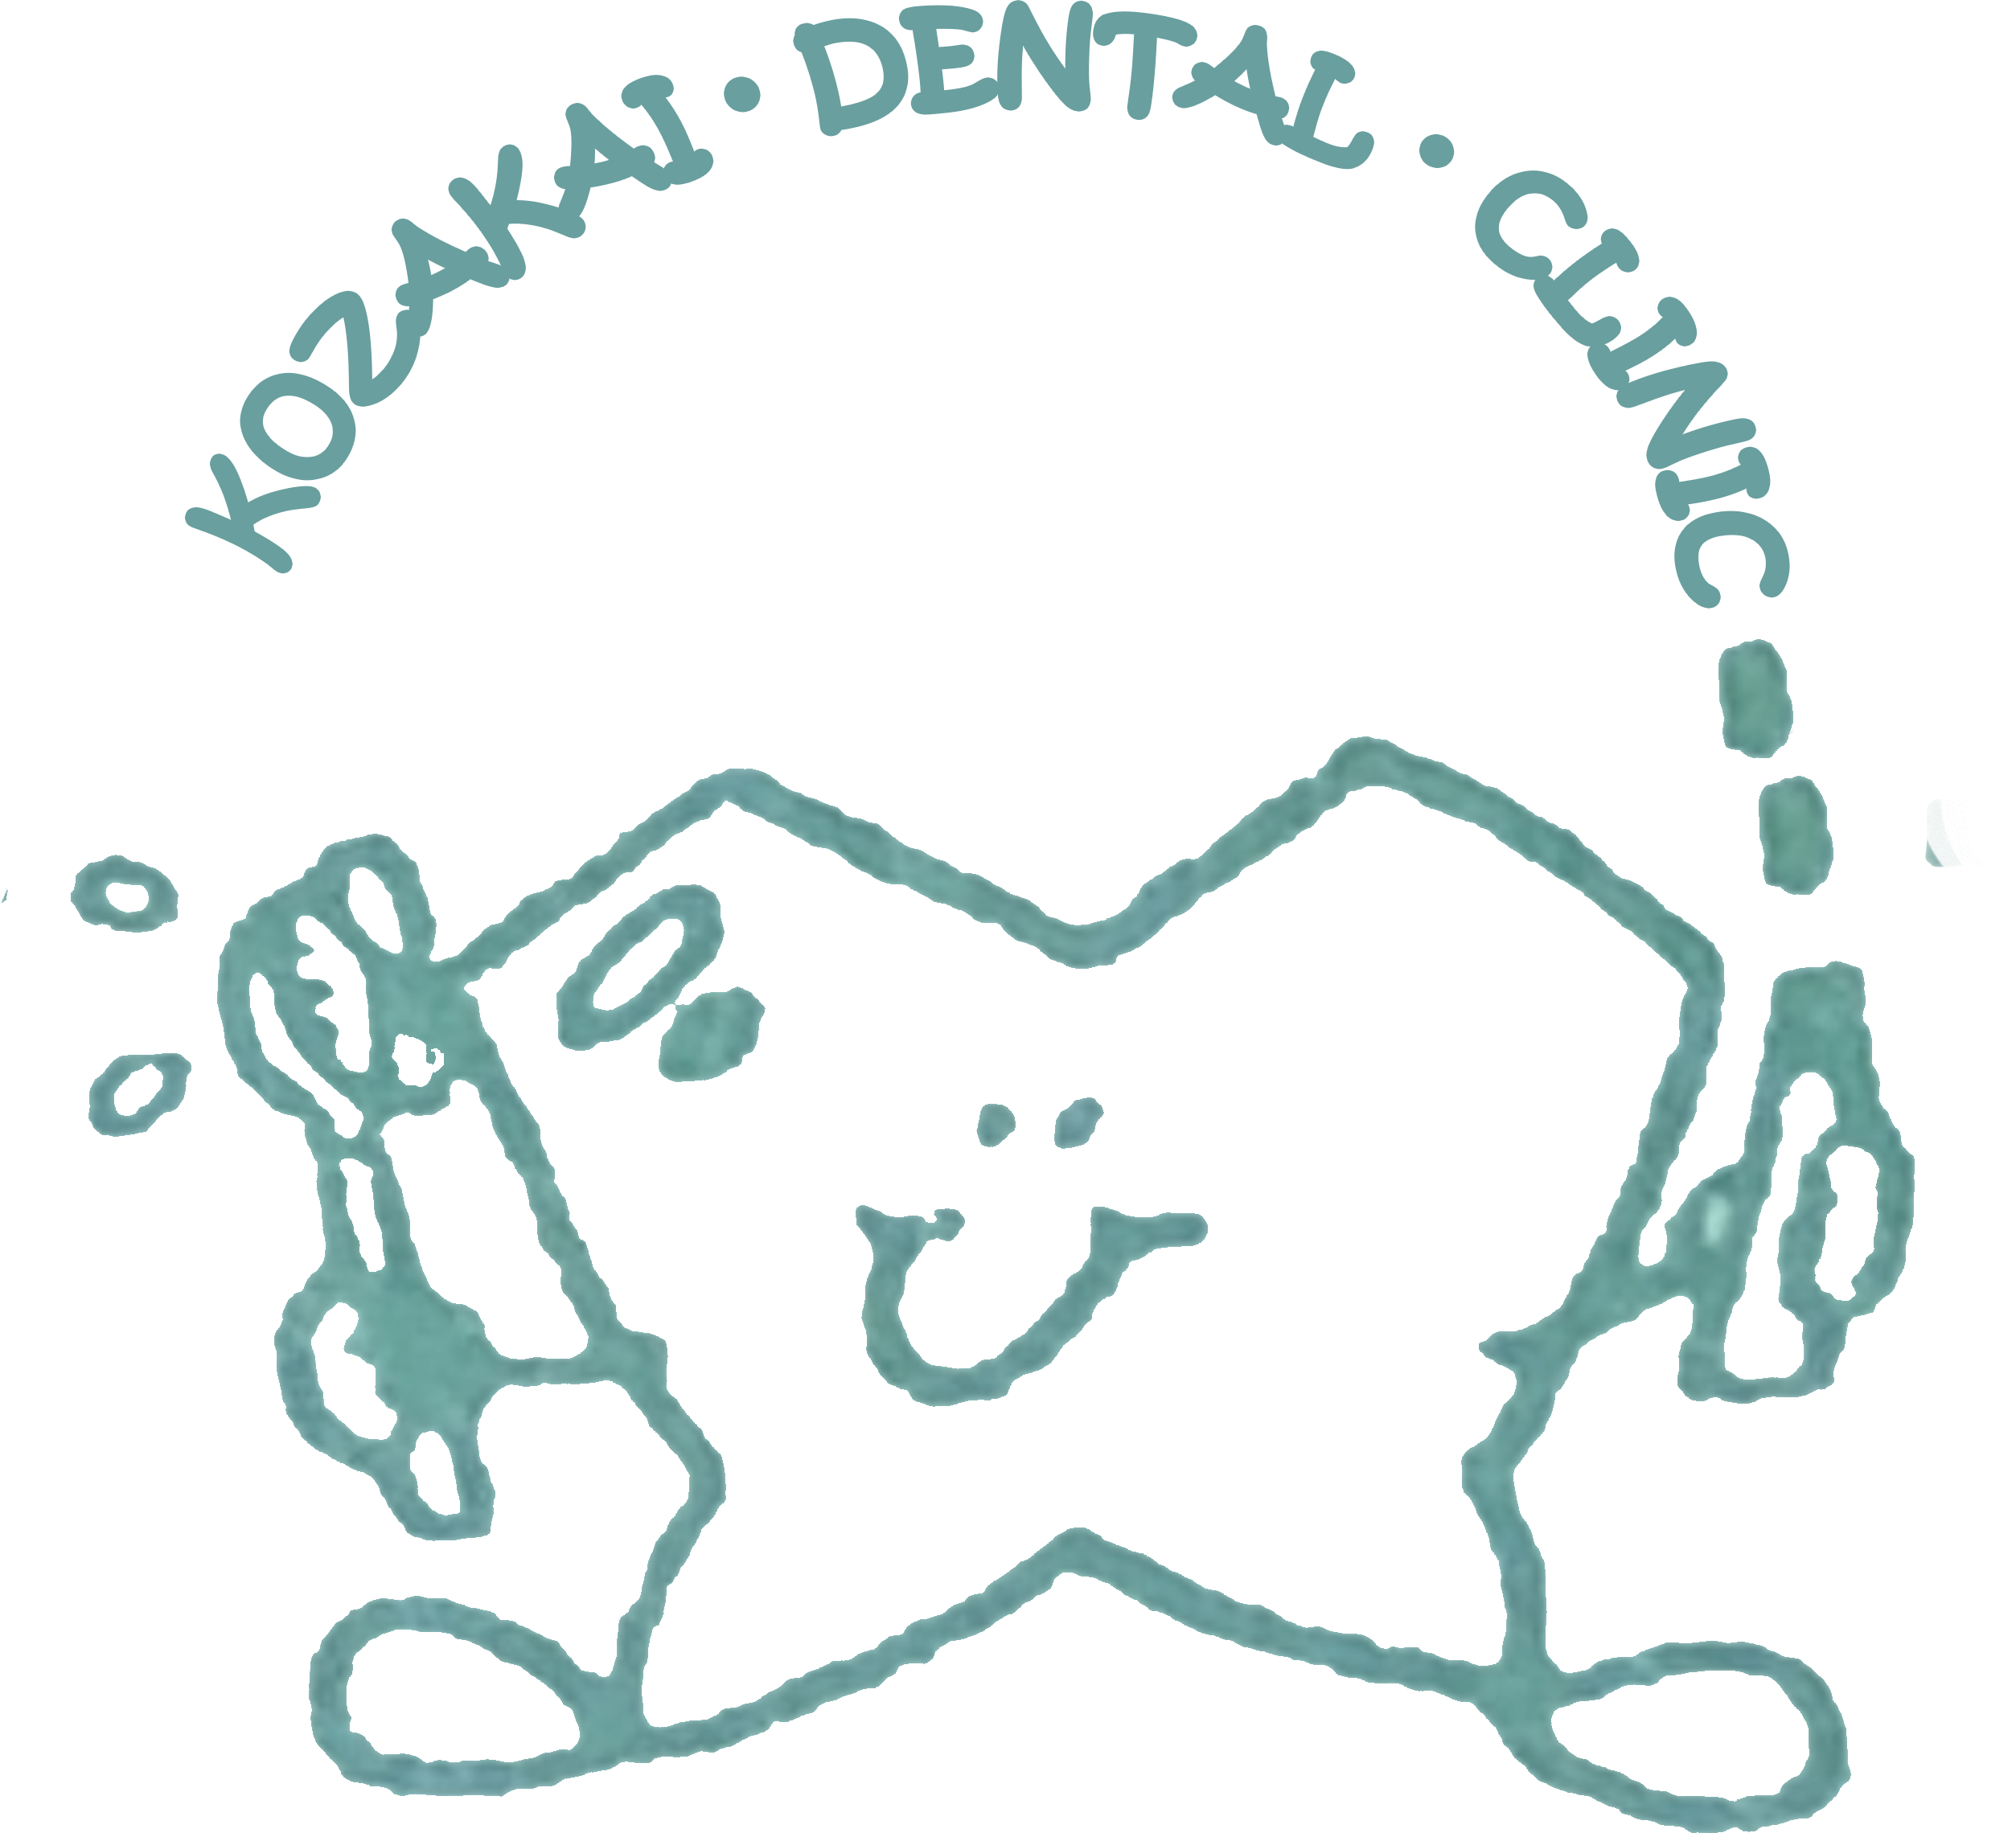 kozakai dental clinic